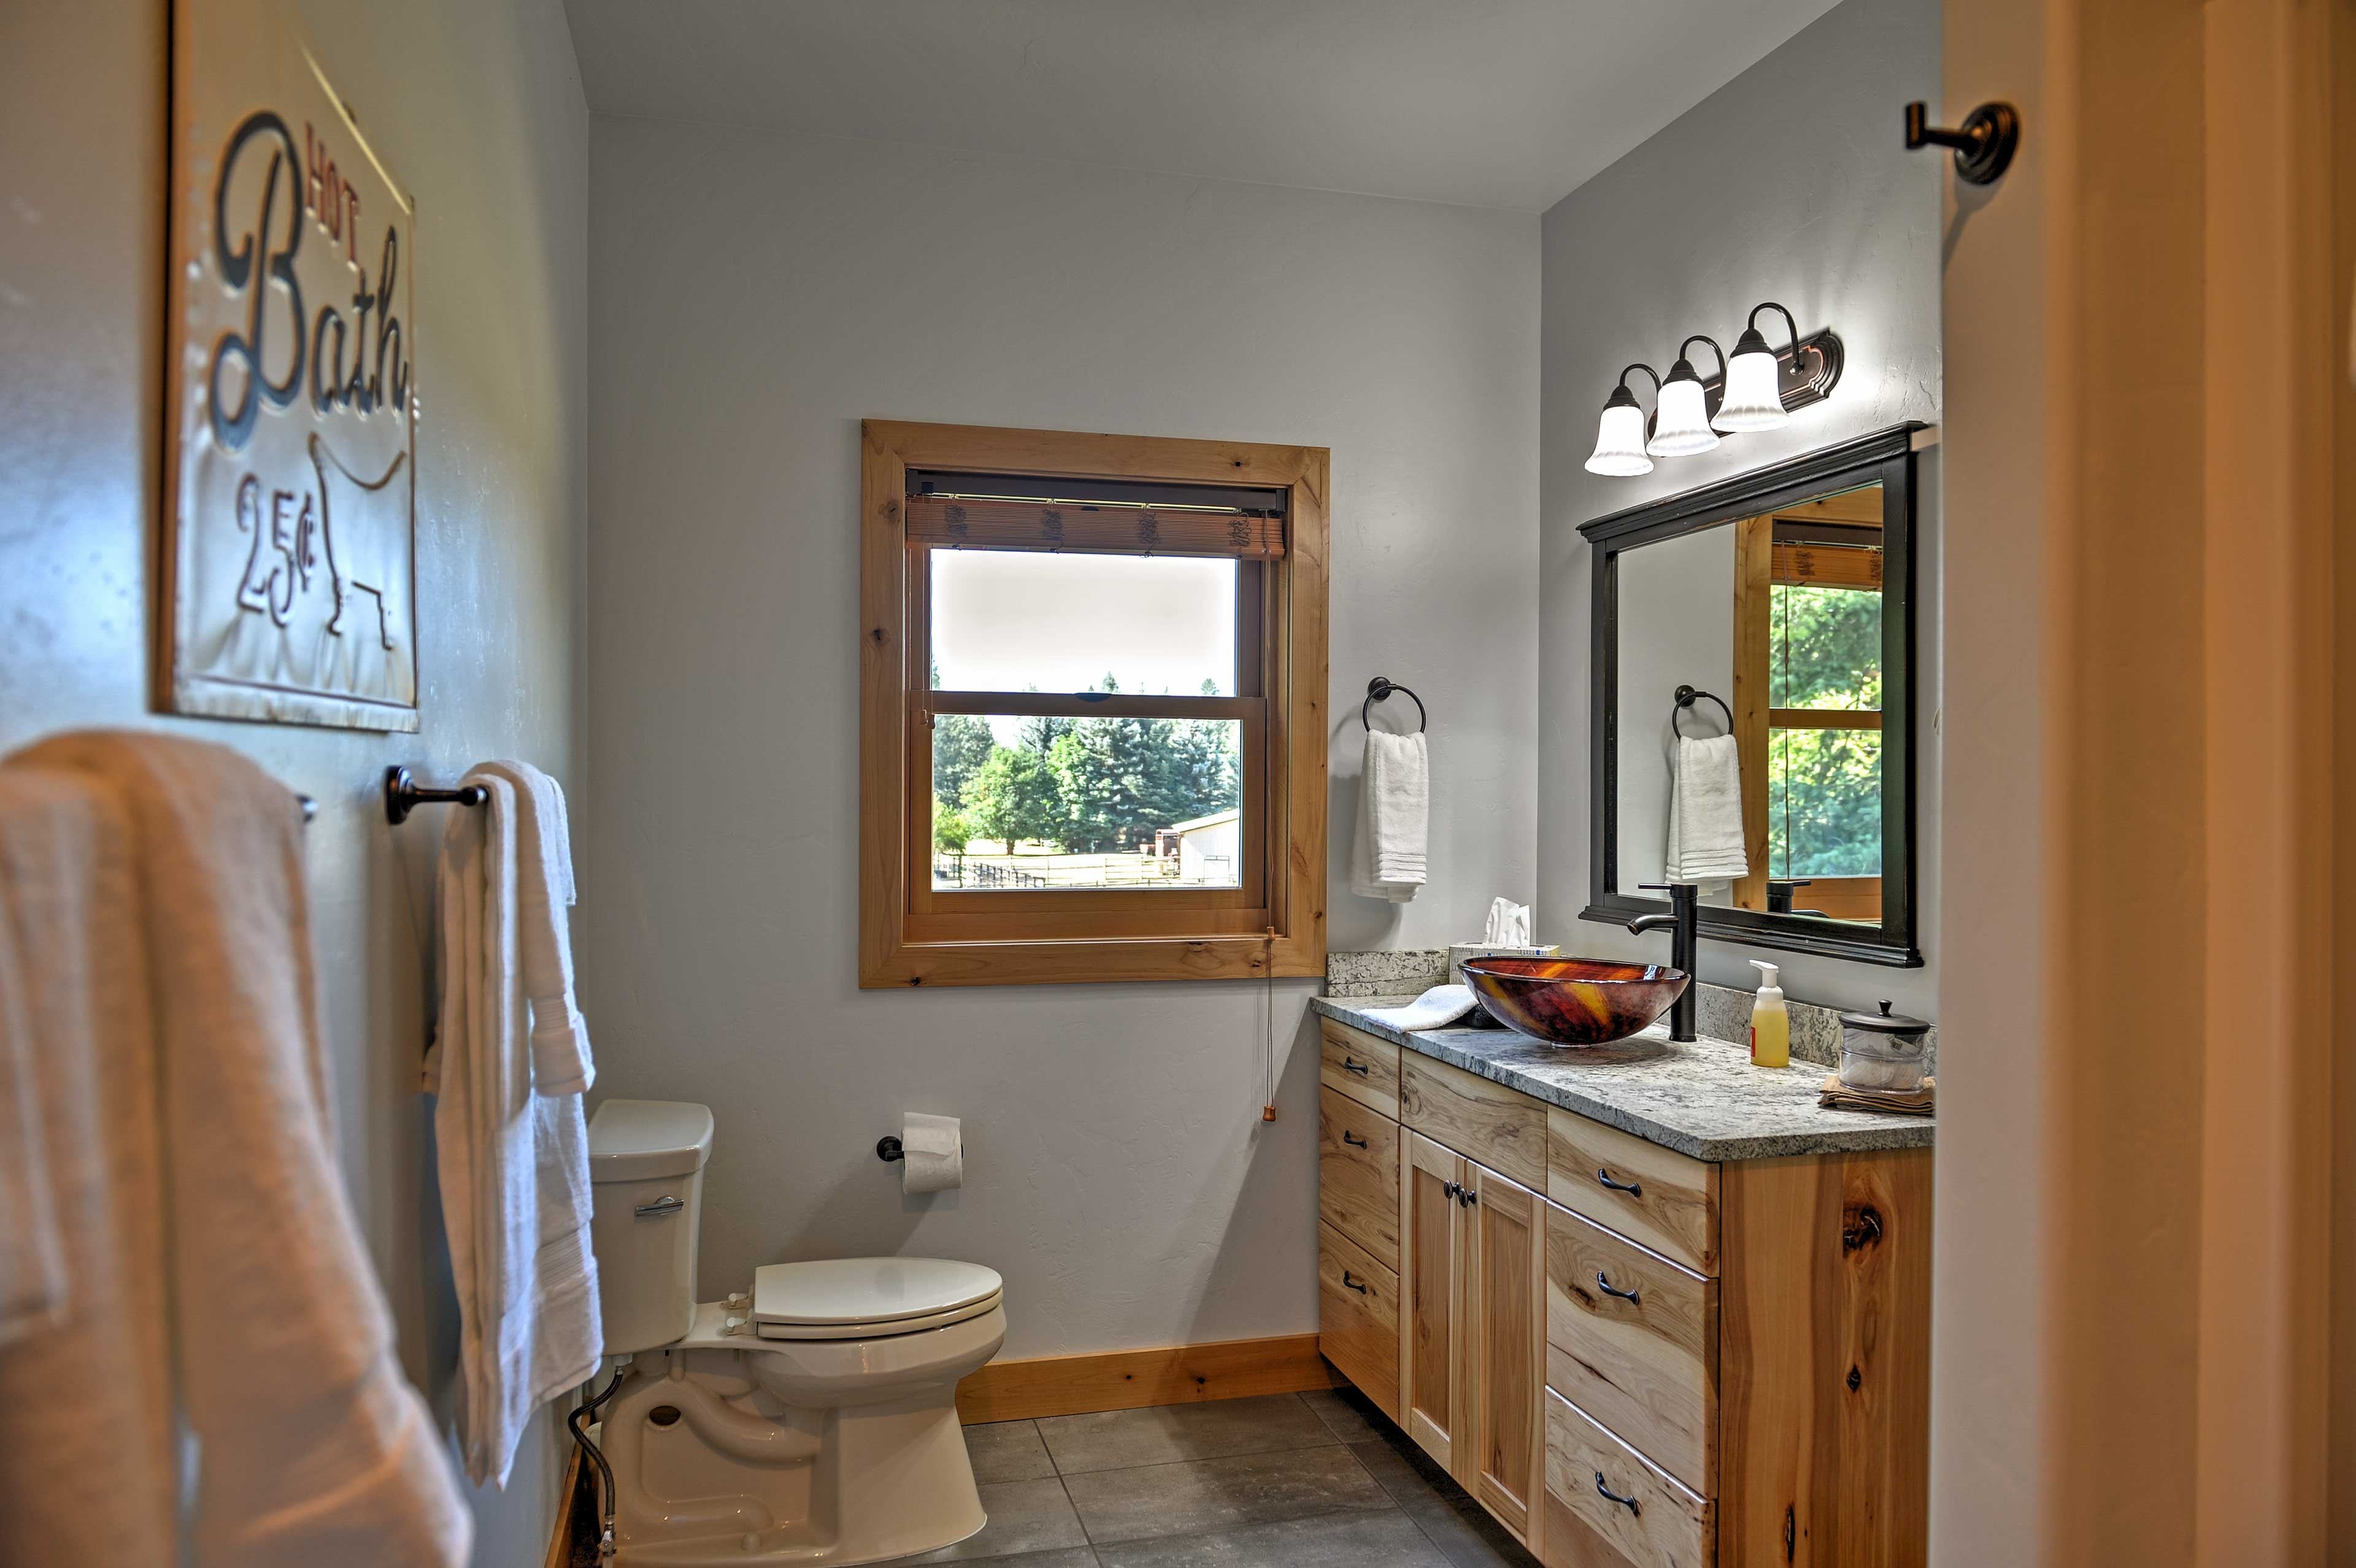 The bathroom features a stylish vessel sink.